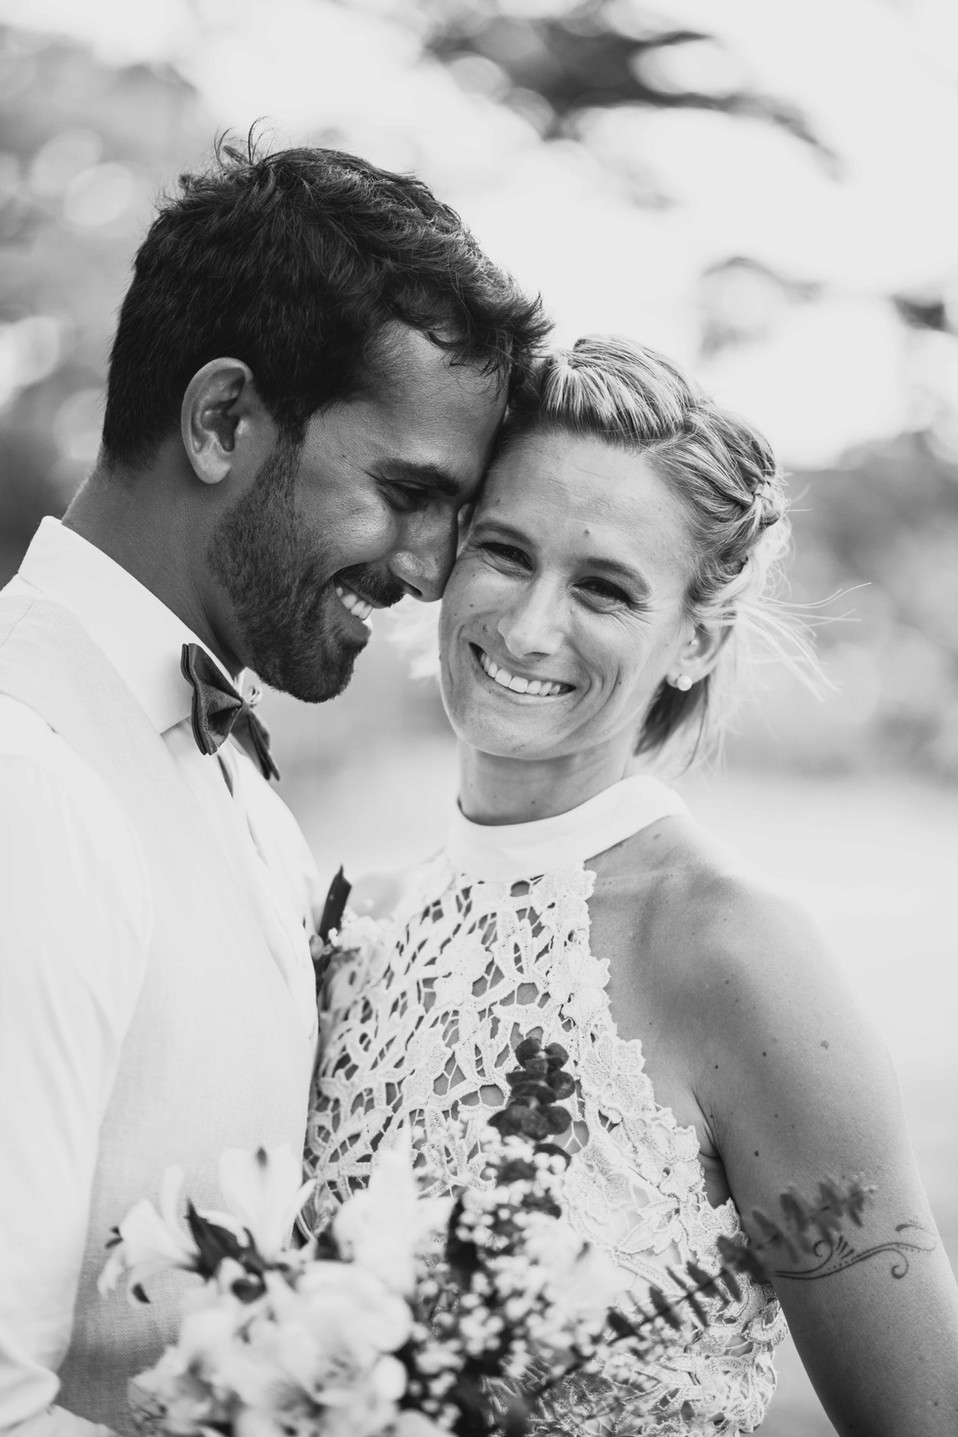 Alicia and Fabrice - Wedding in Mauritius